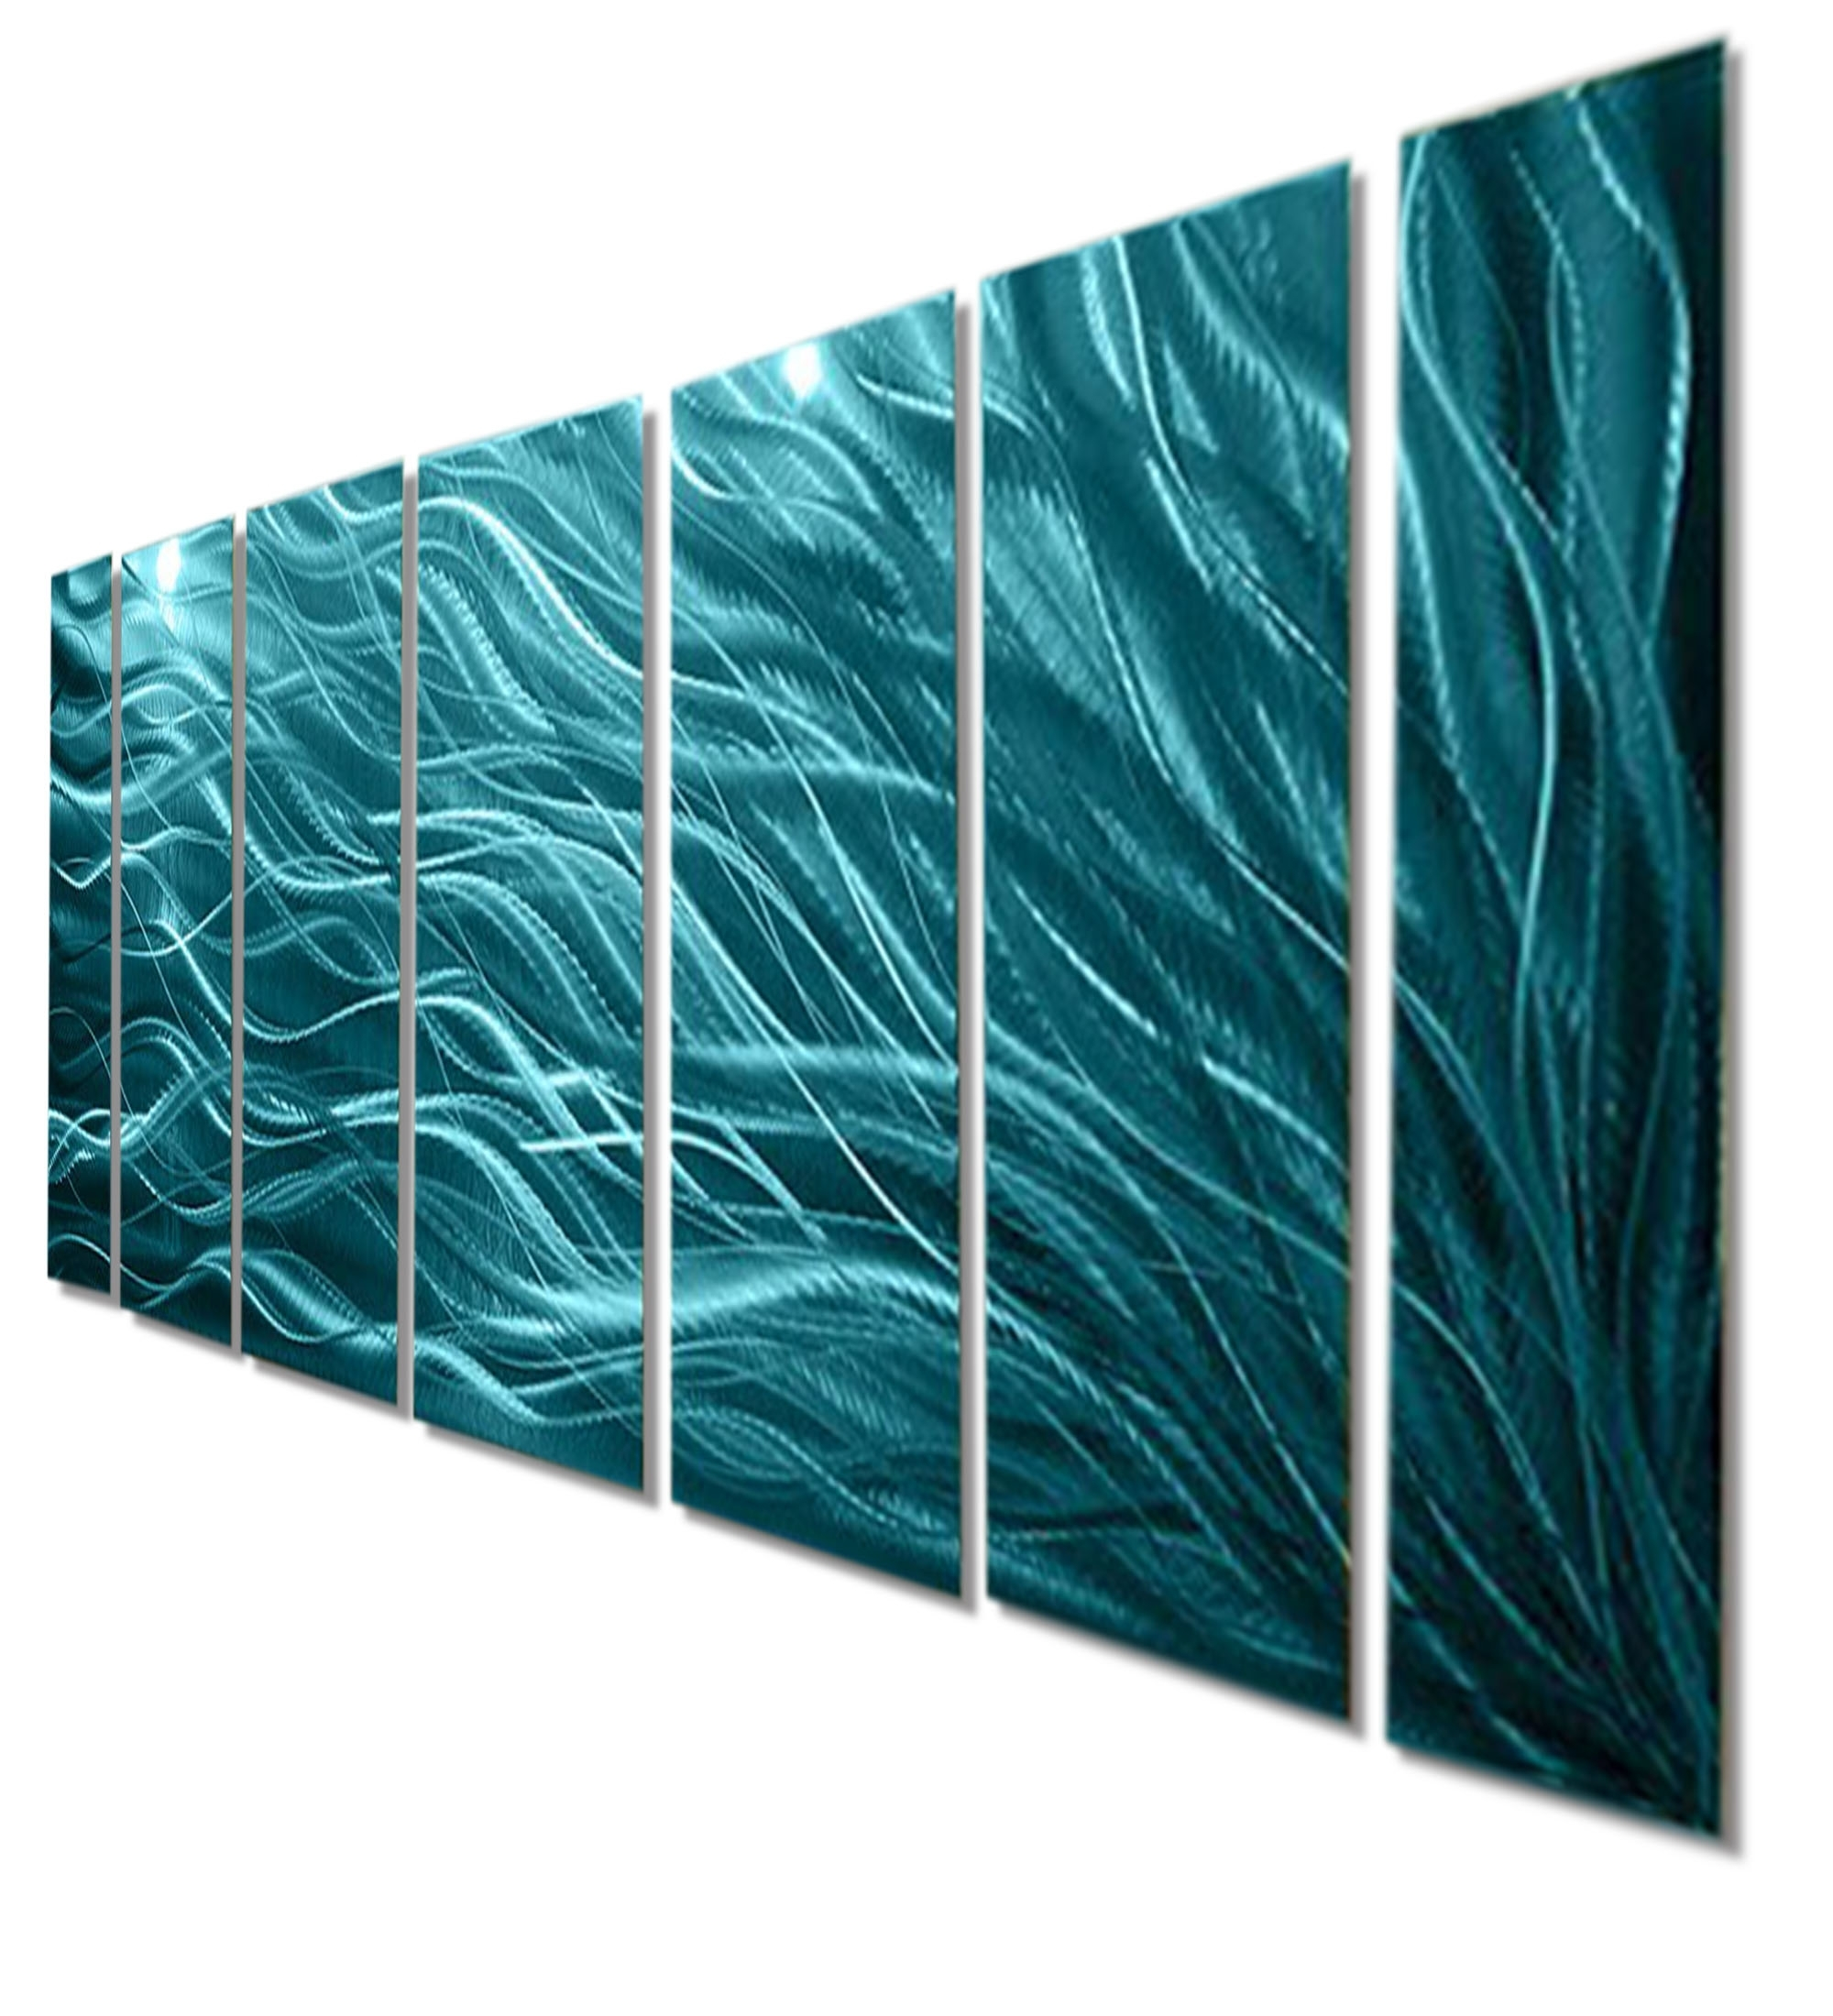 Latest Rays Of Hope Aqua – Large Modern Abstract Metal Wall Artjon Pertaining To Large Contemporary Wall Art (View 10 of 15)